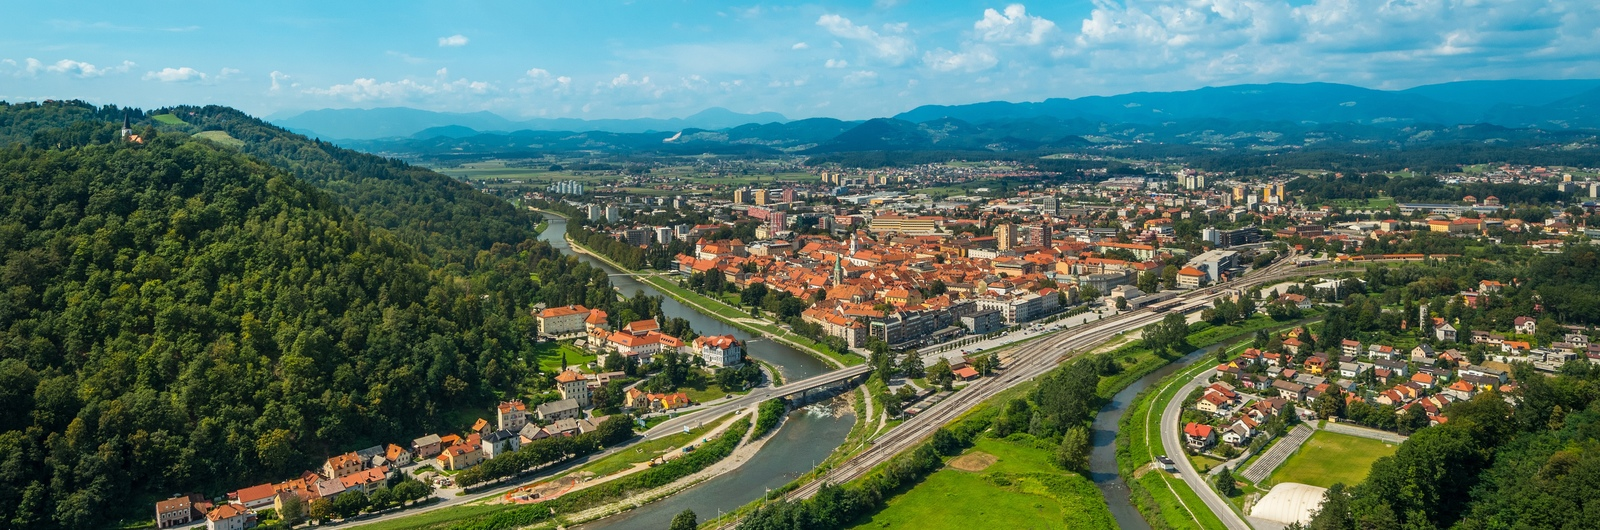 celje city header